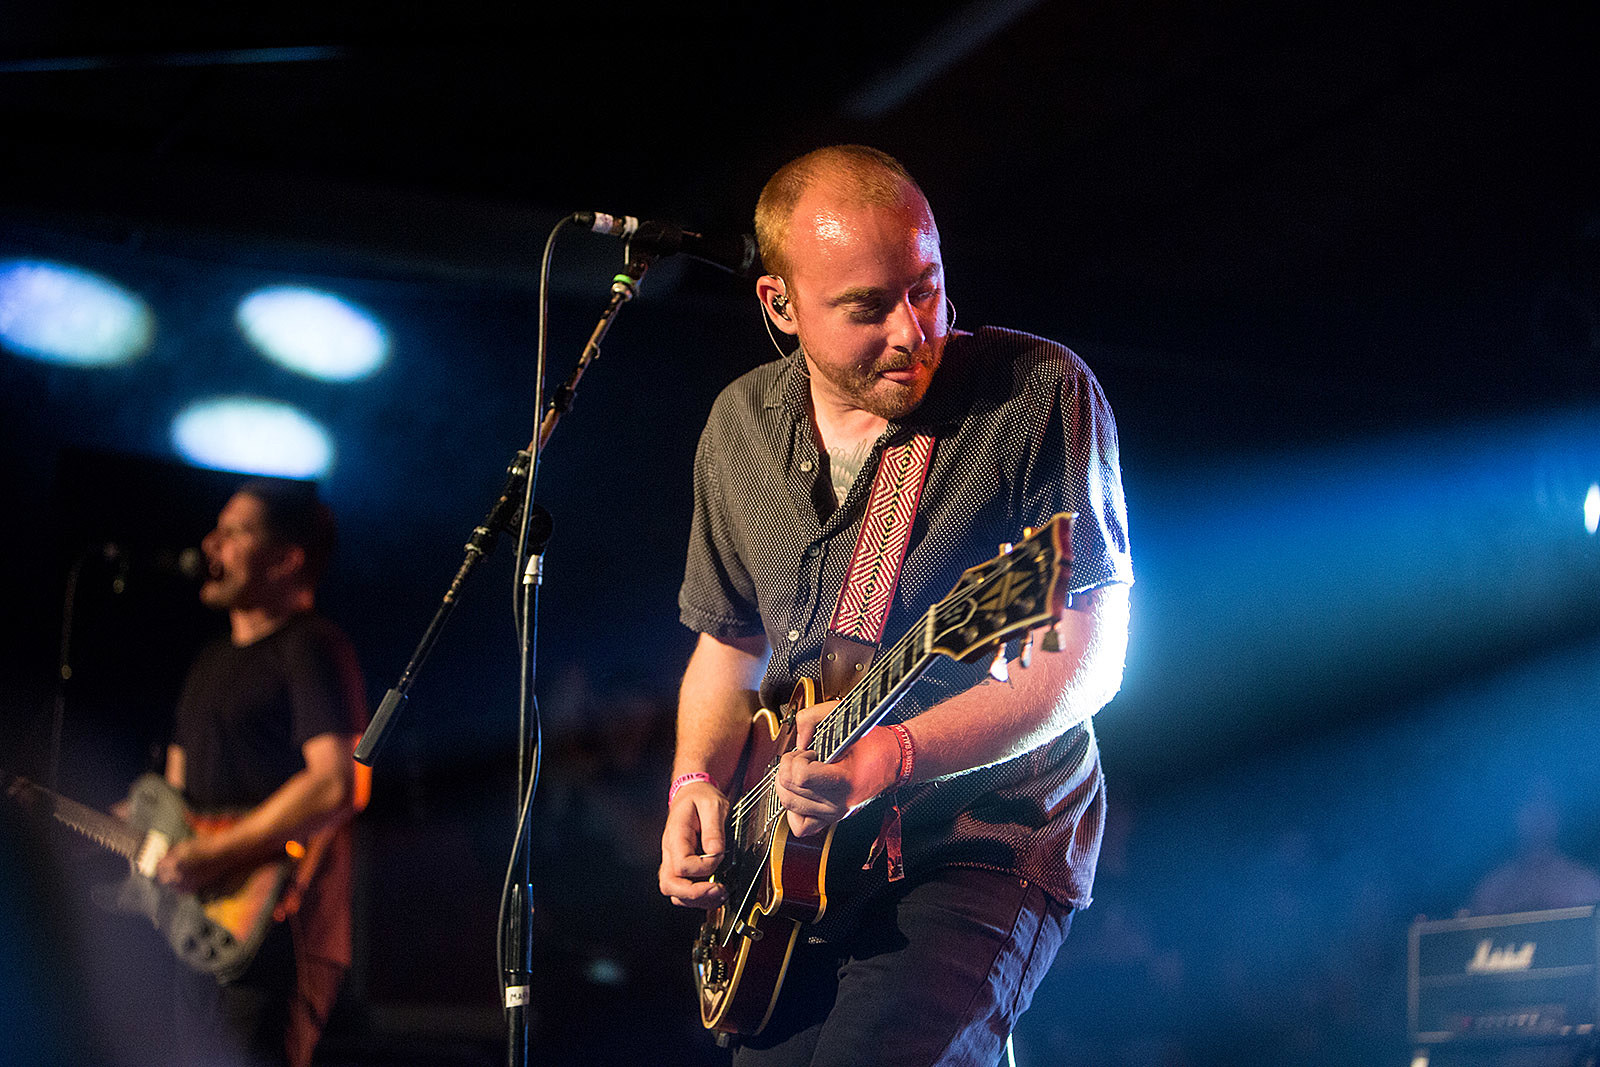 The Menzingers at Wrecking Ball Festival 2016 - Saturday